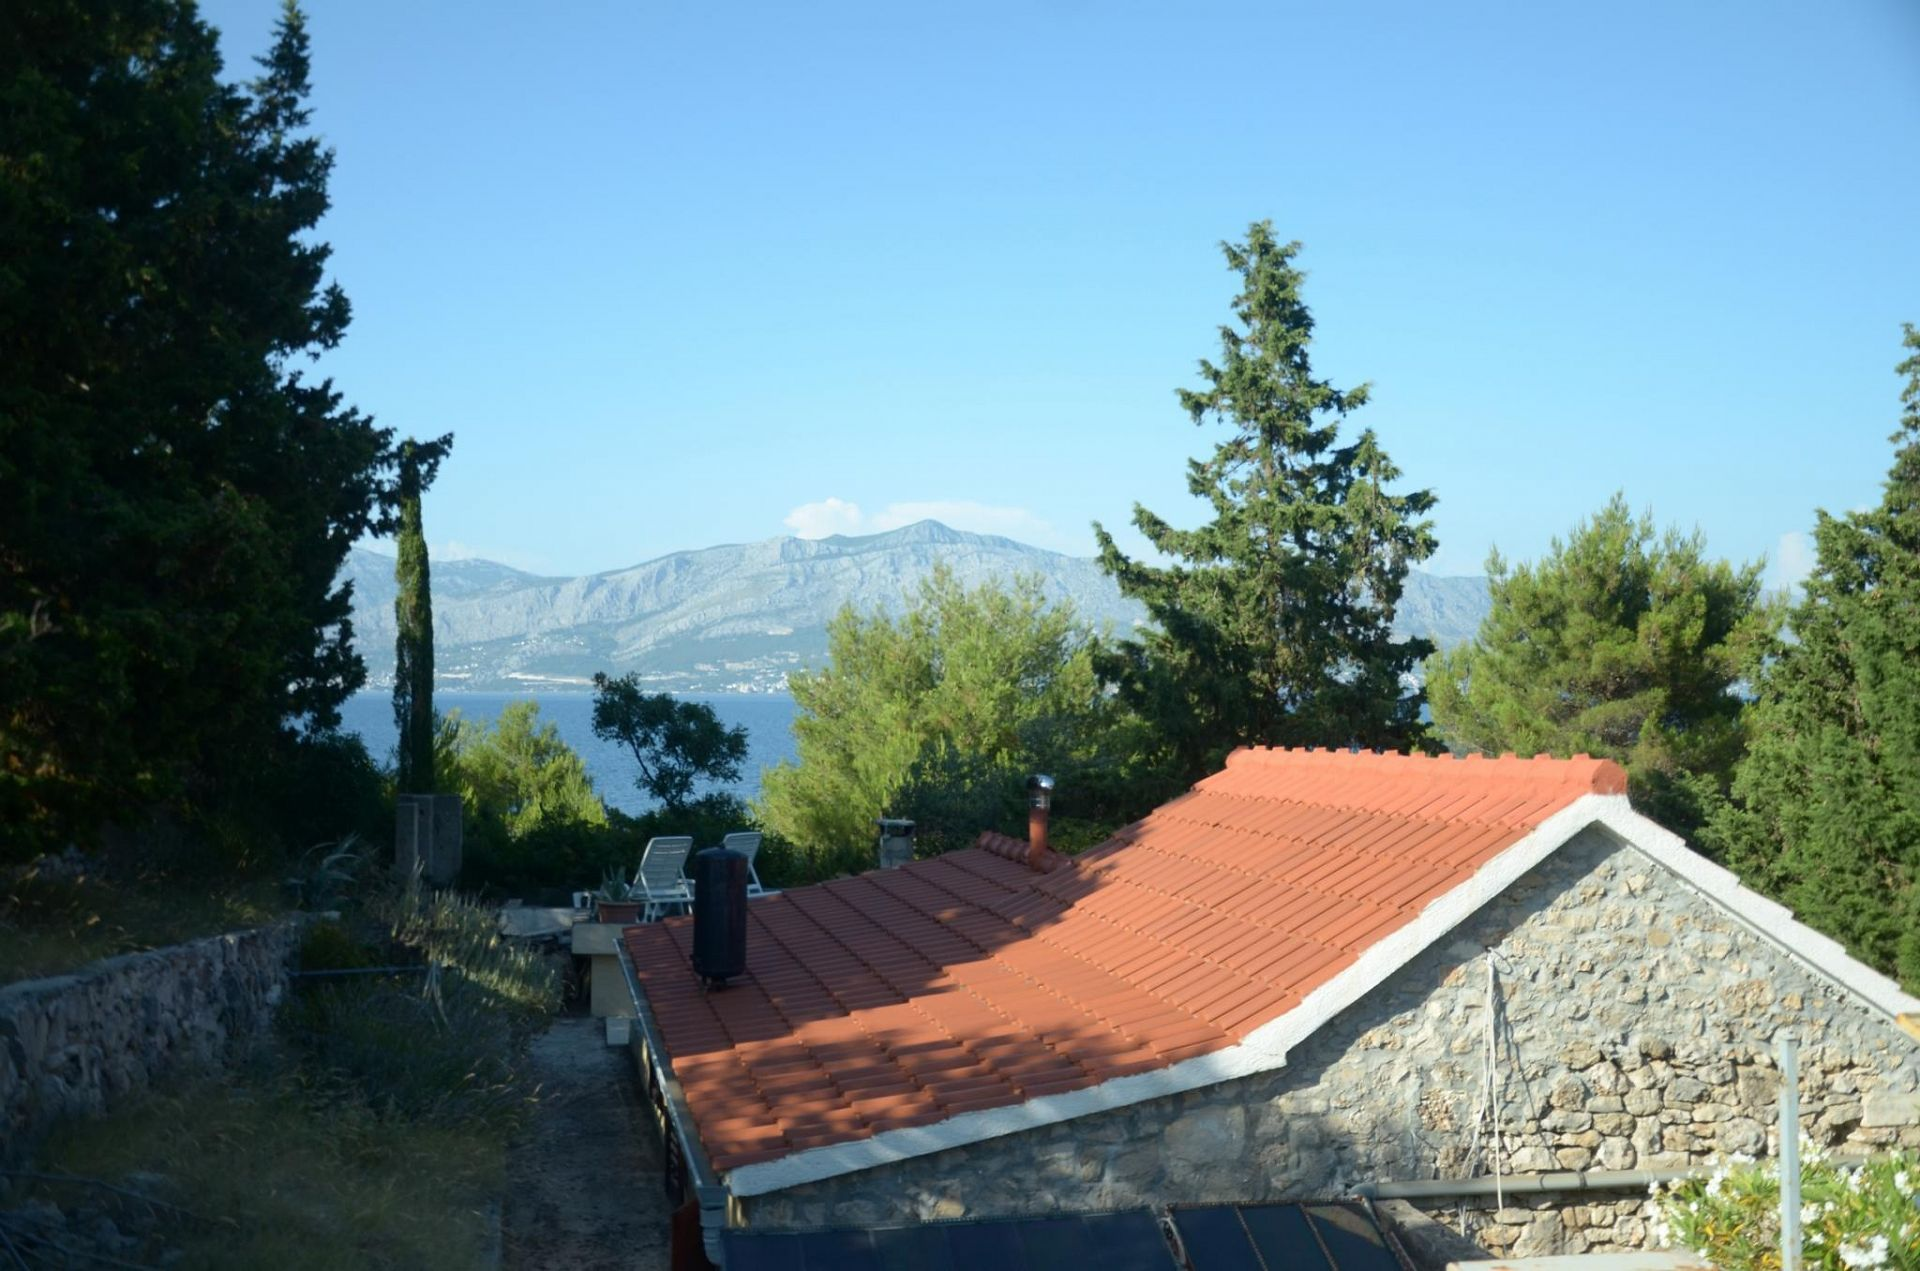 3188 - Cove Vela Lozna (Postira) - Holiday houses, villas Croatia